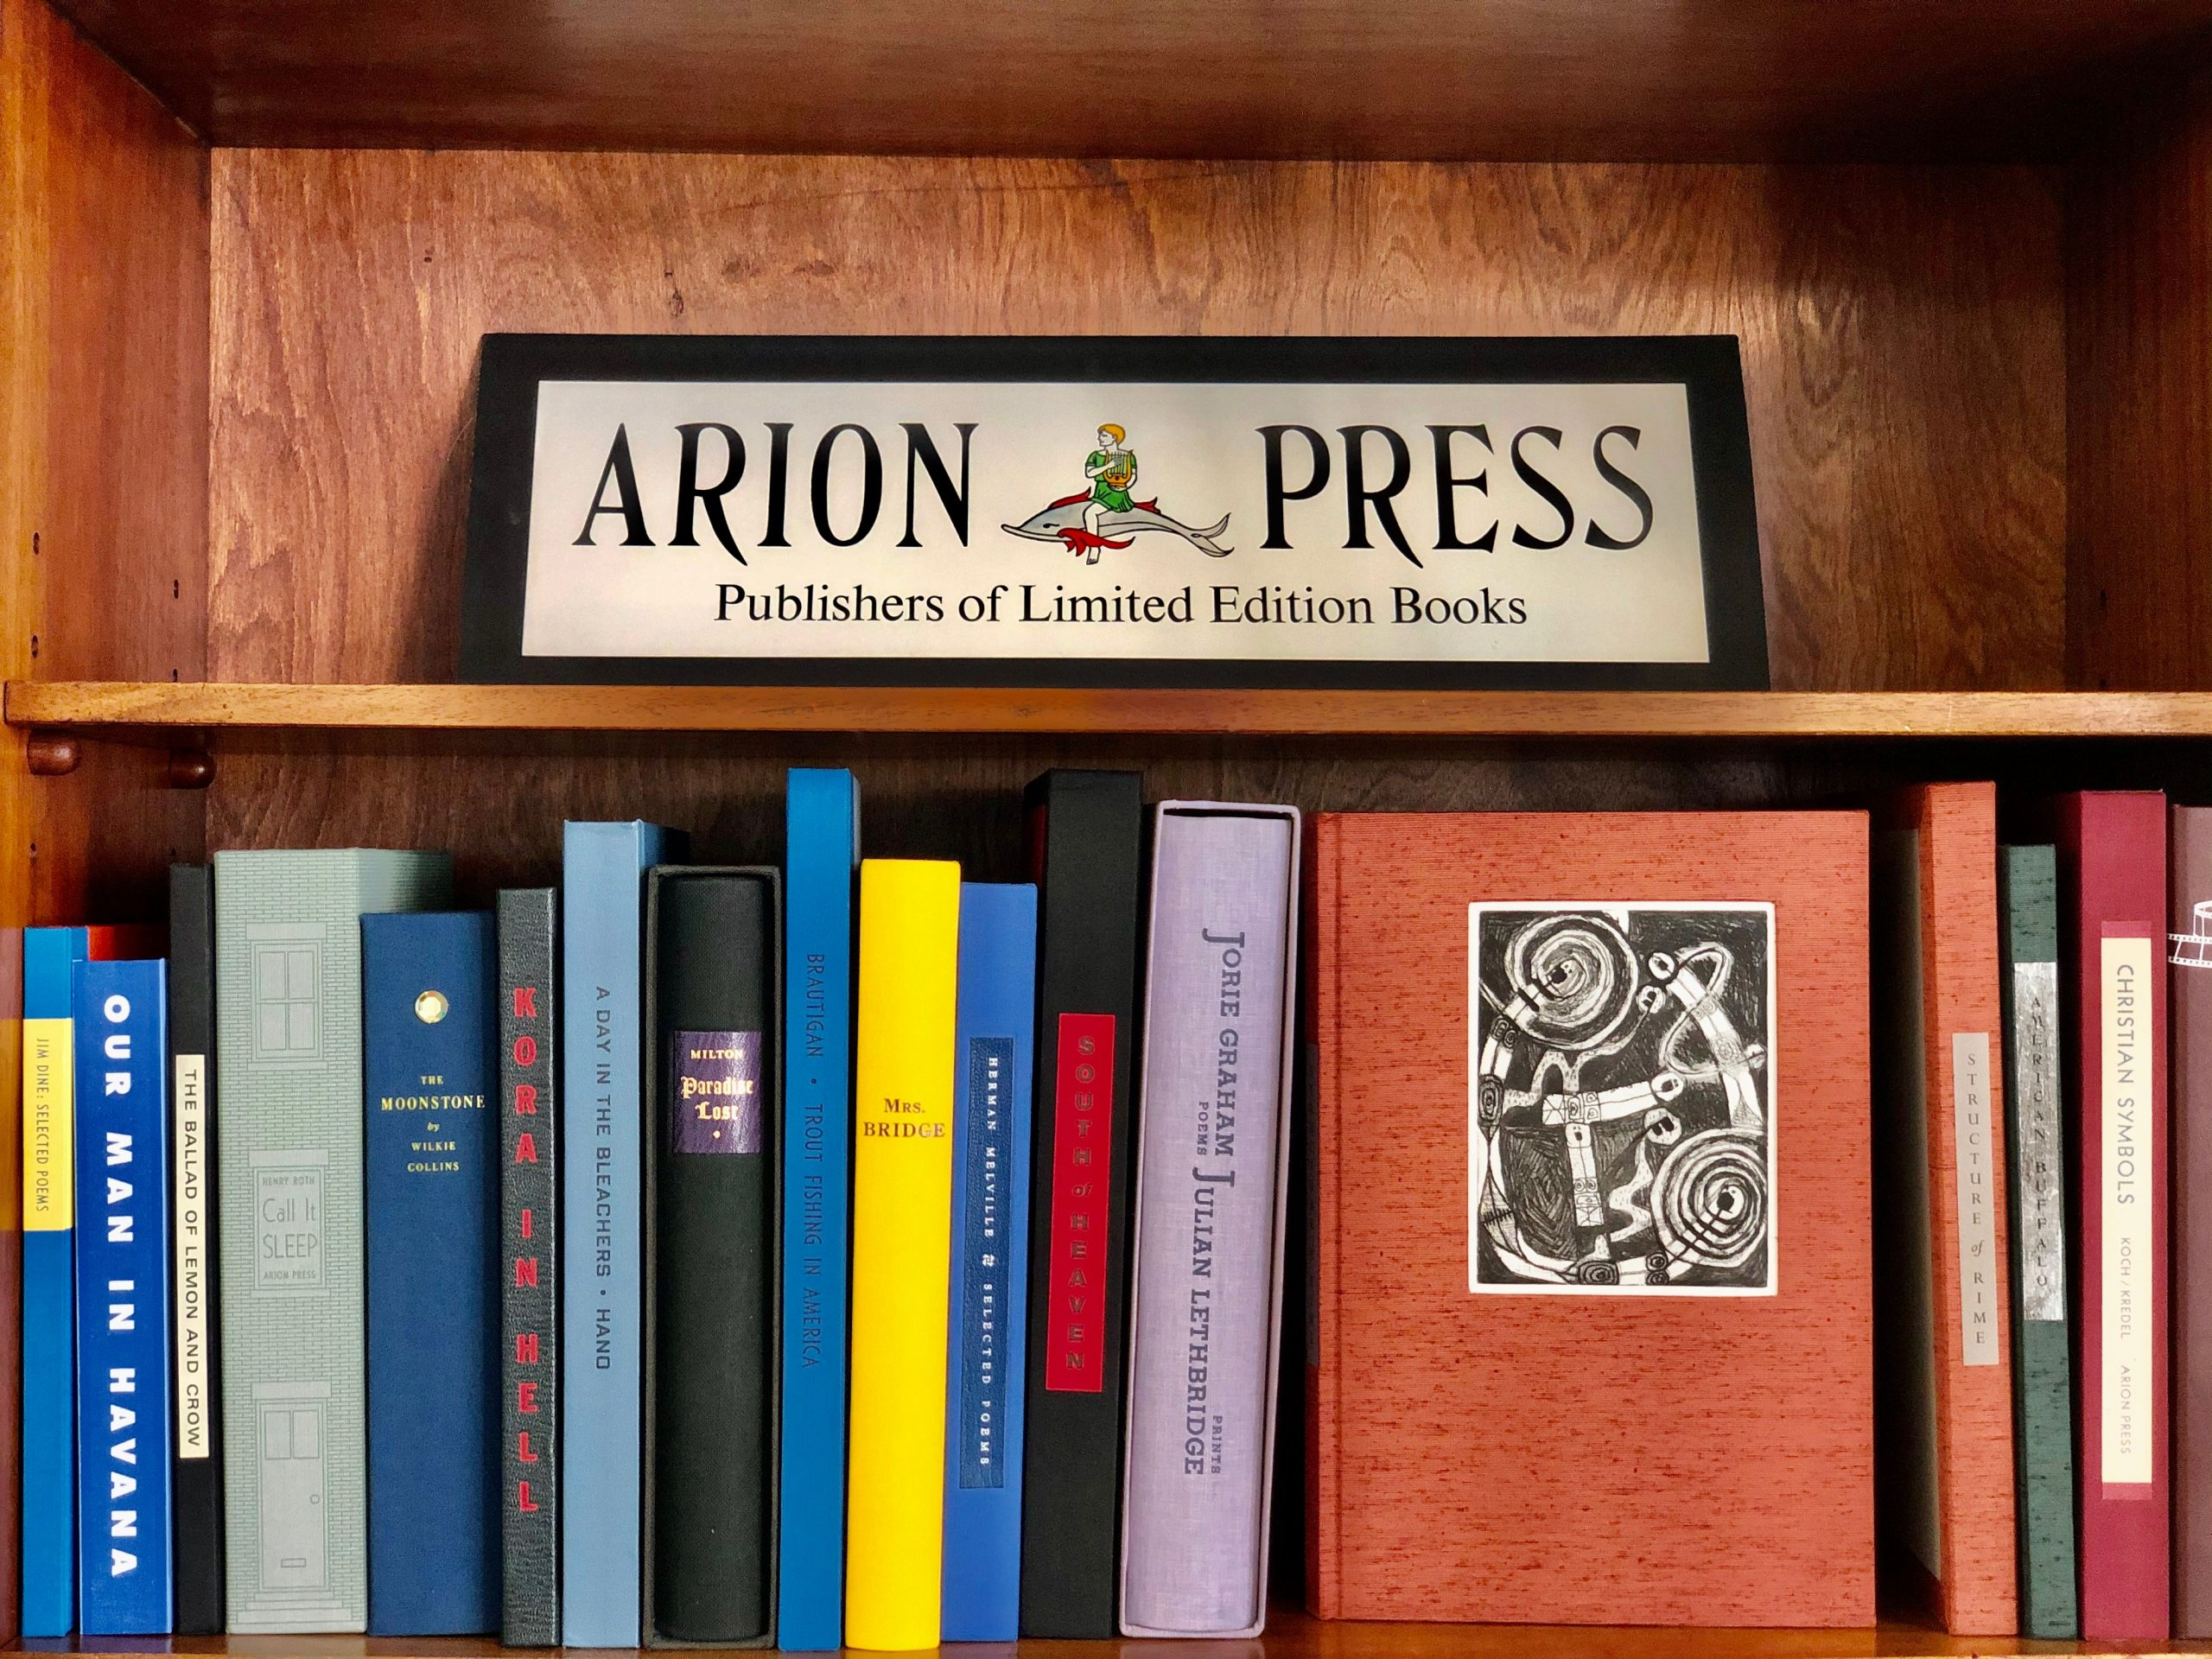 Books on shelf at Arion Press